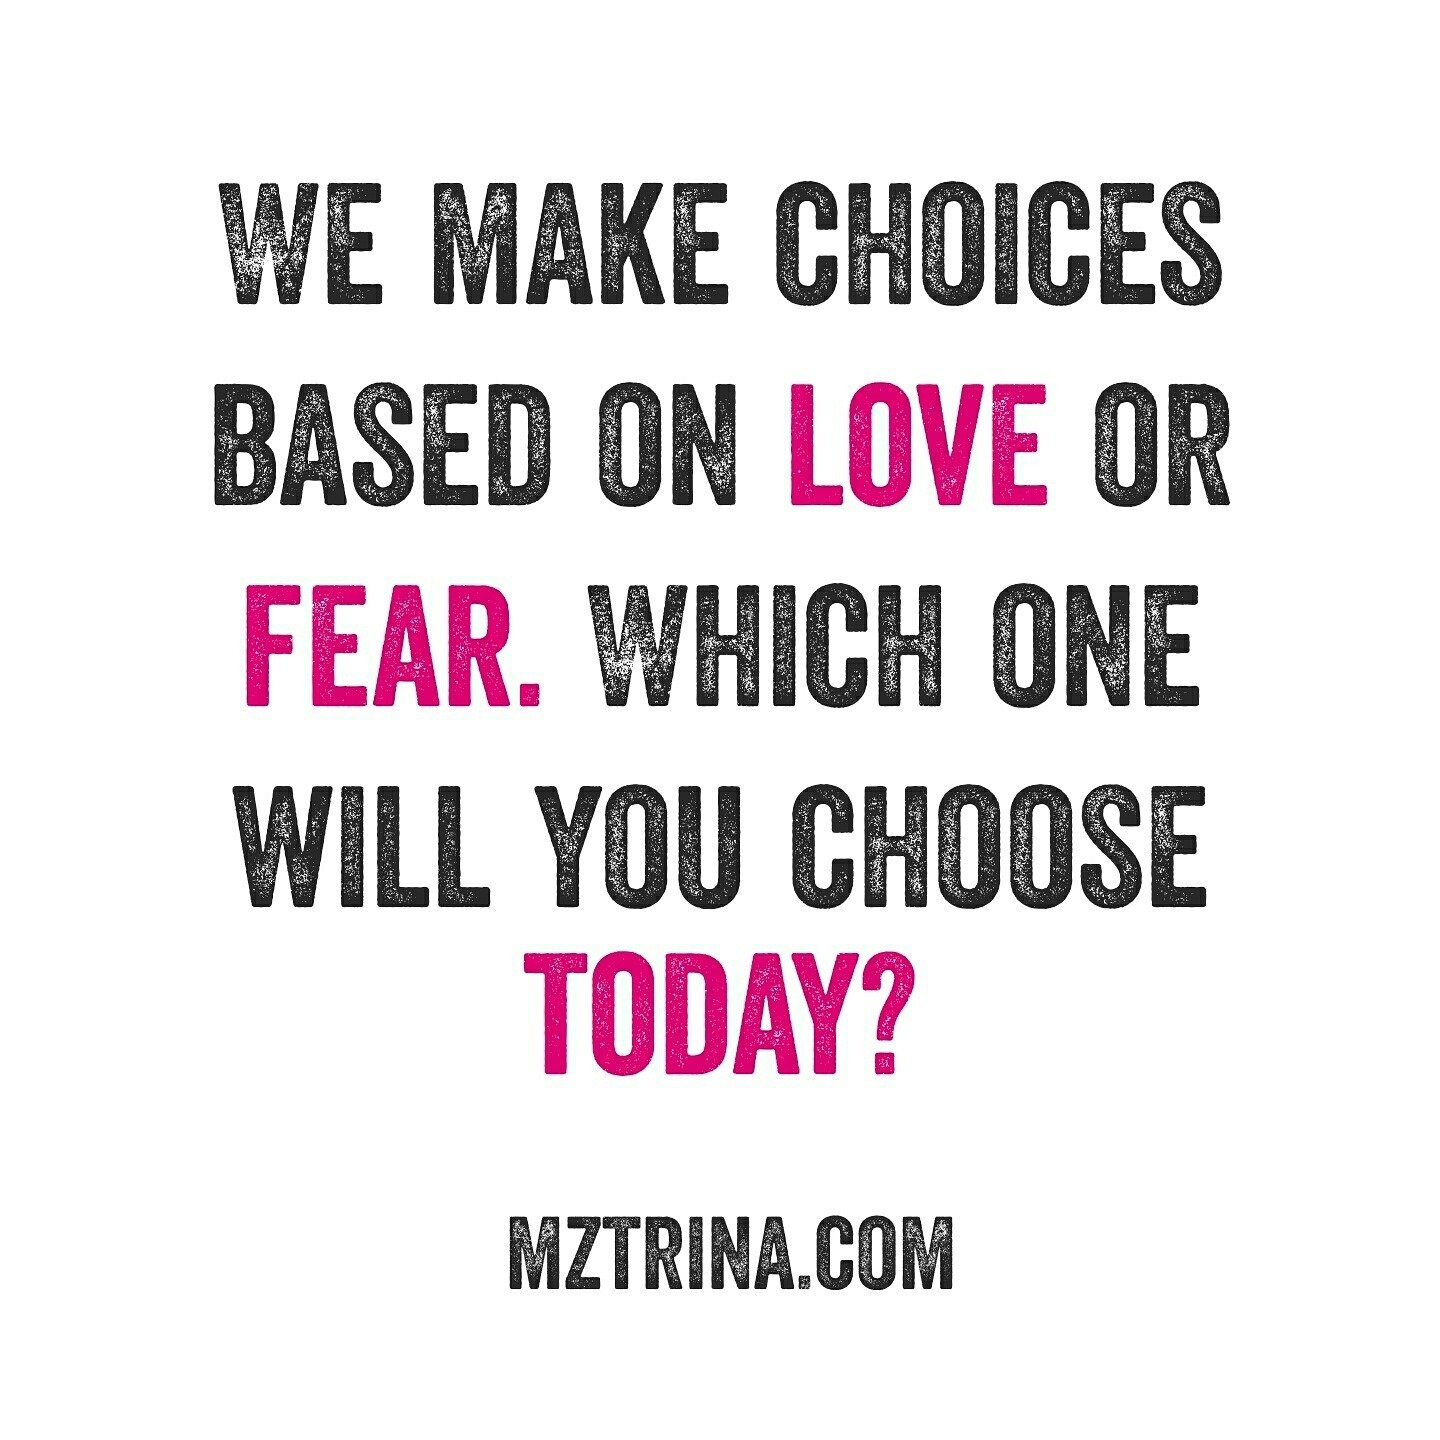 We make choices based on love or fear.